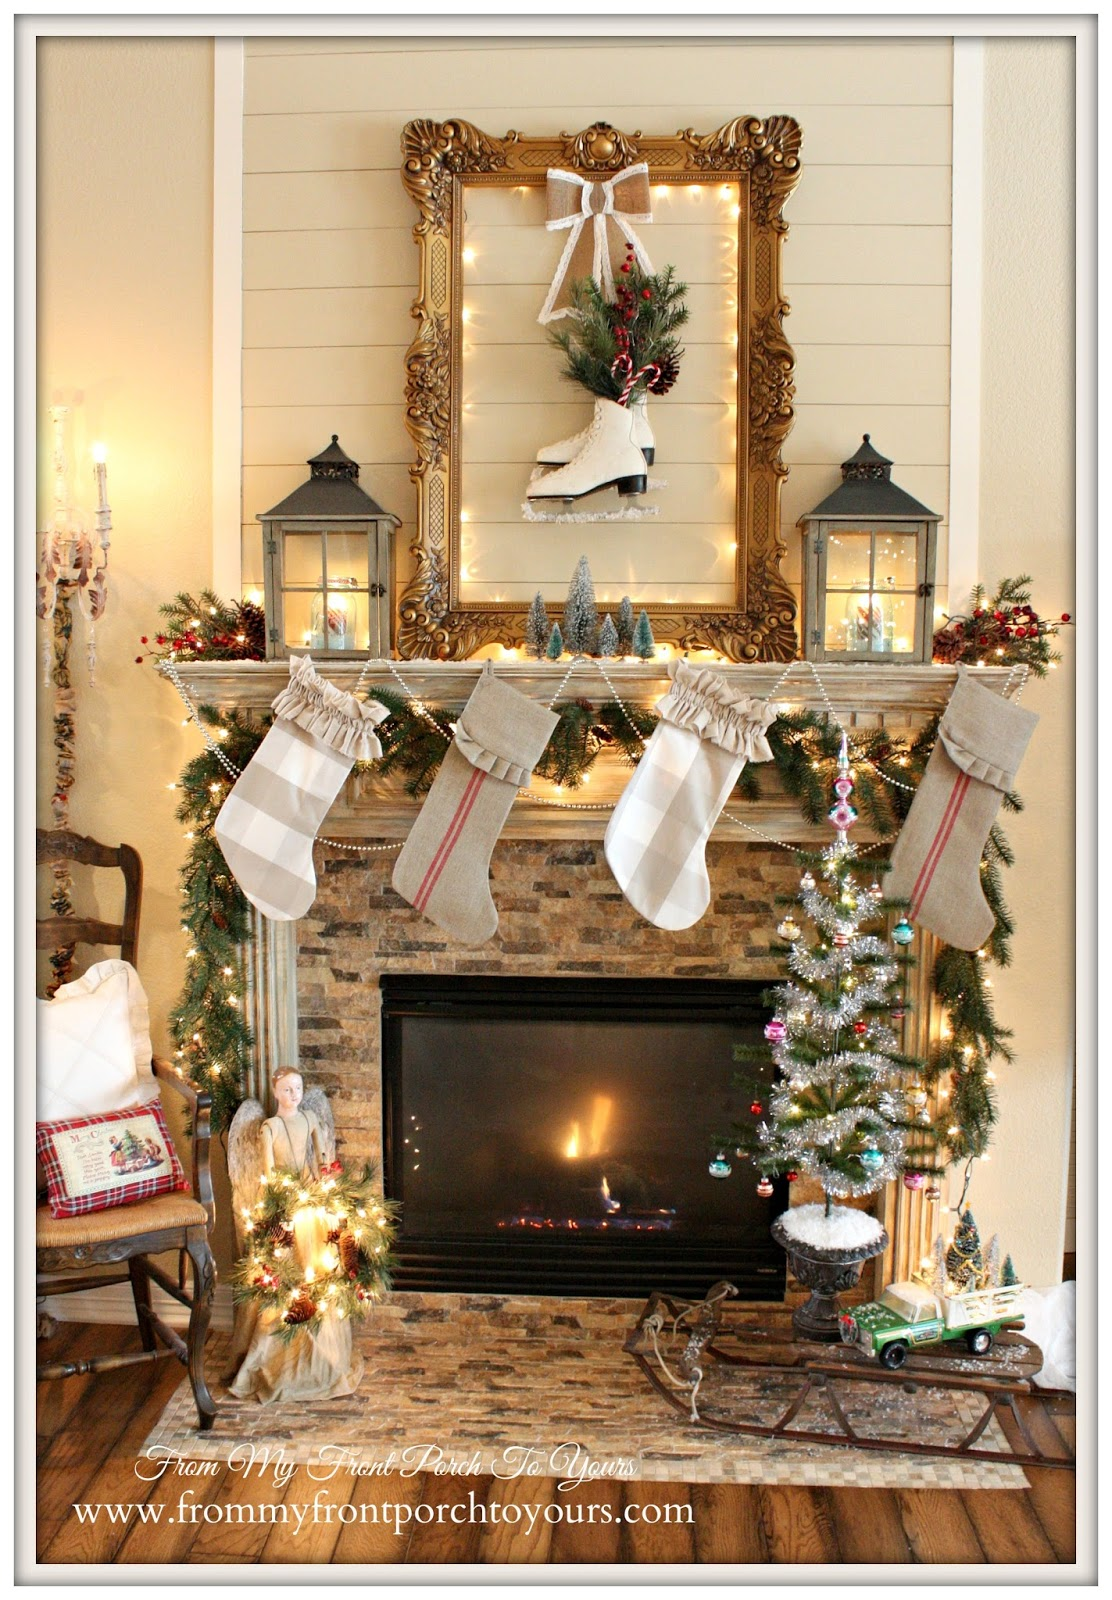 From My Front Porch To Yours: Christmas Mantel 2014 & Blog Hop